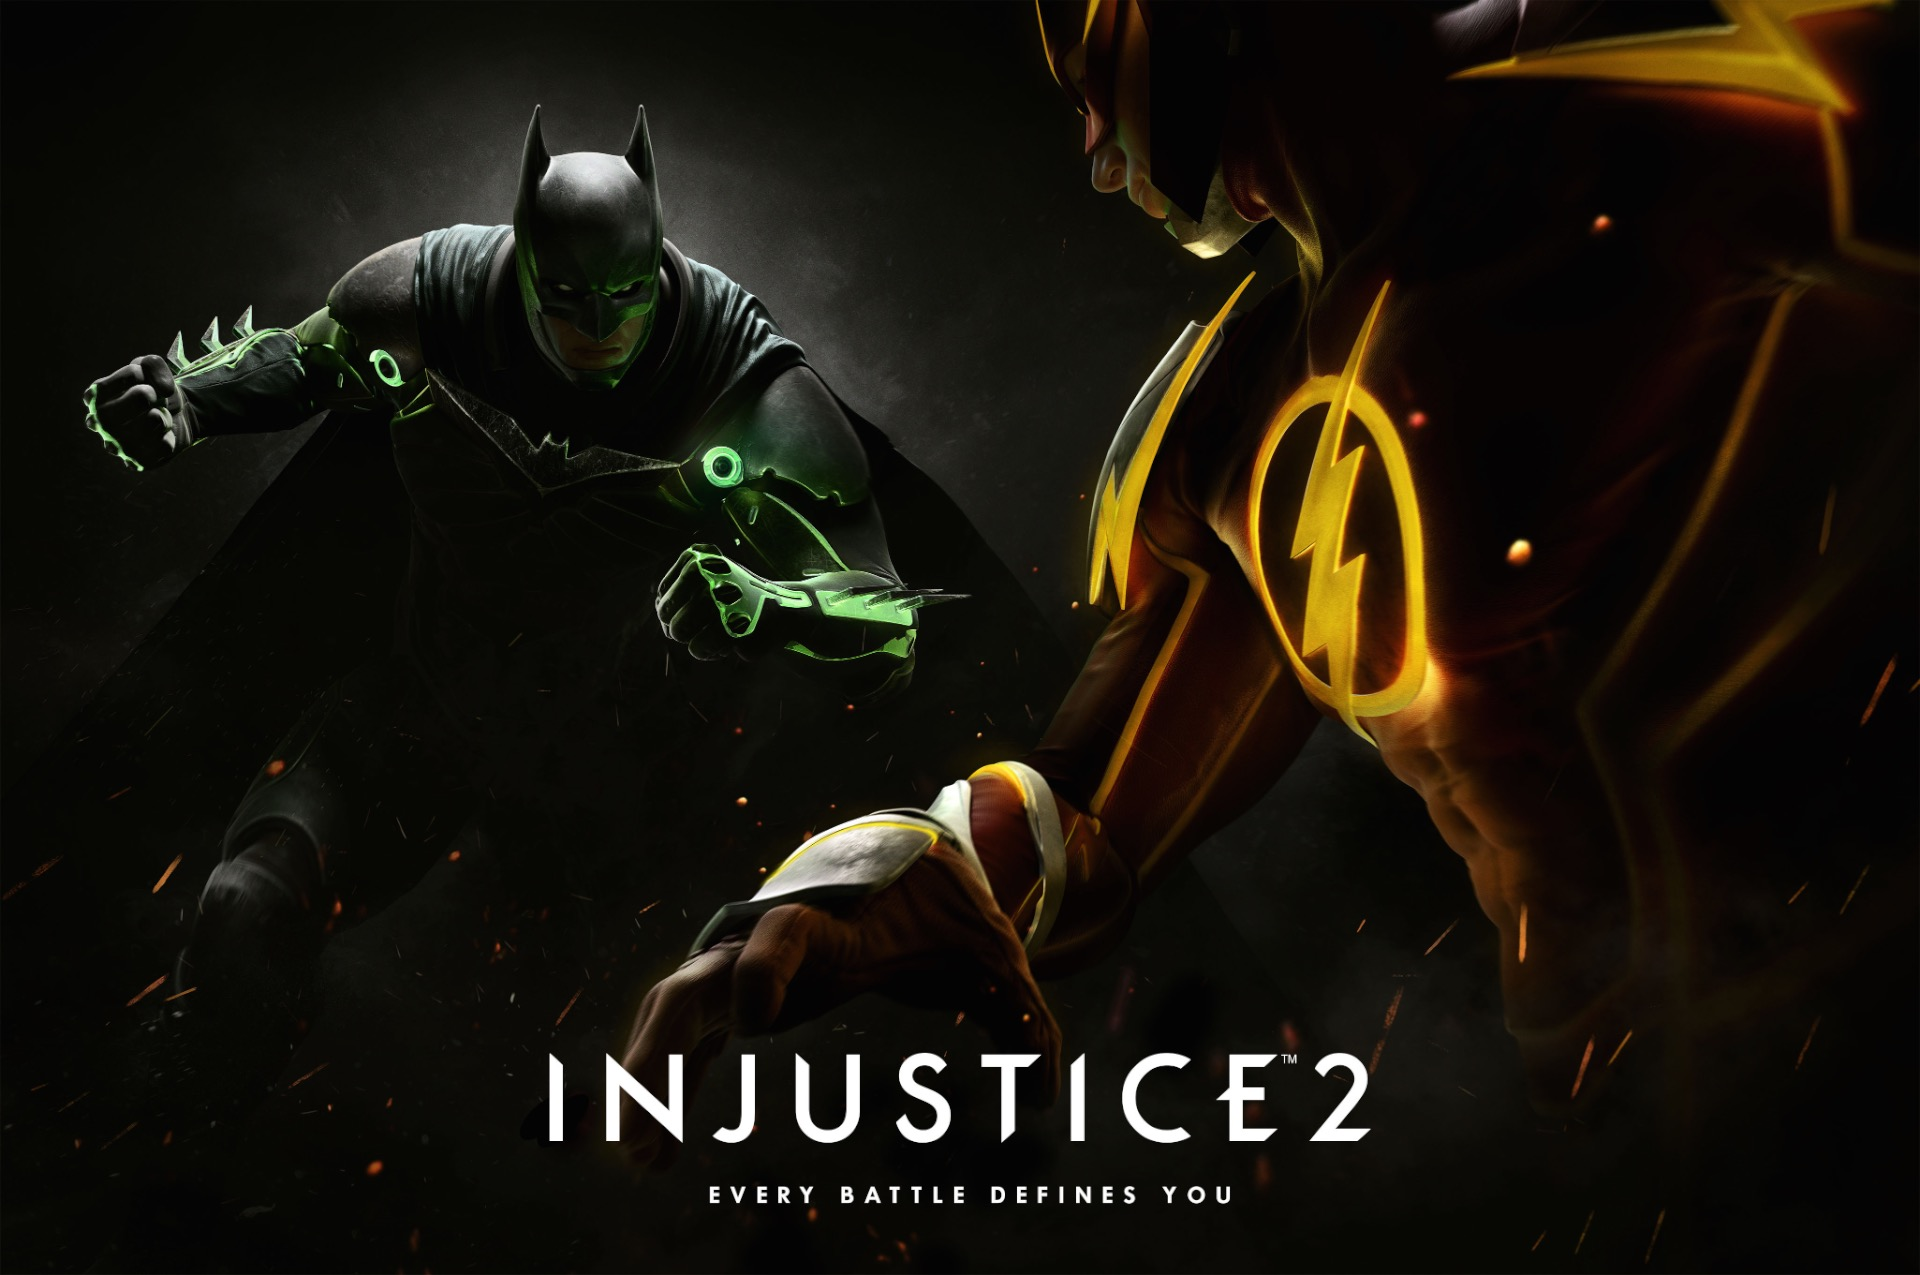 Injustice 2 Officially Announced for 2017 Release - Xbox One, Xbox 360 ...